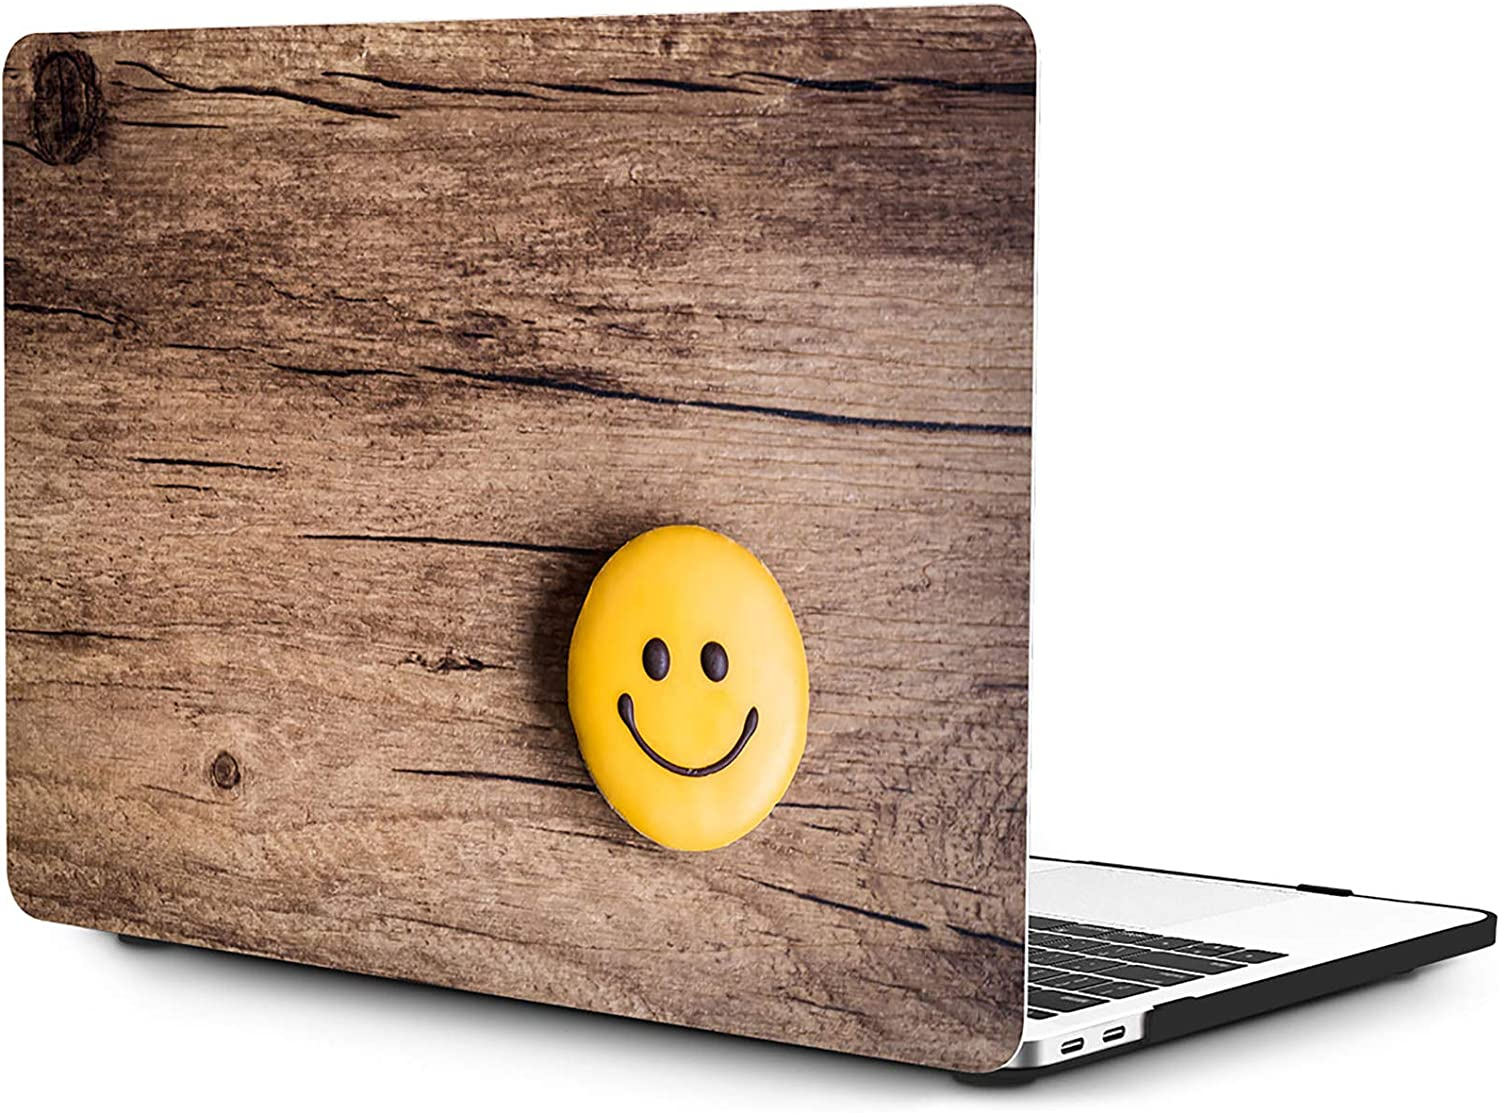 OneGET MacBook Pro 16 Inch Case with Touch Bar Touch ID MacBook Pro 16 Inch Case 2019 Release A2141 with Retina Display MacBook Pro Cases Laptop Case Pro 16 Inch Hard Case Woodgrain(S28)